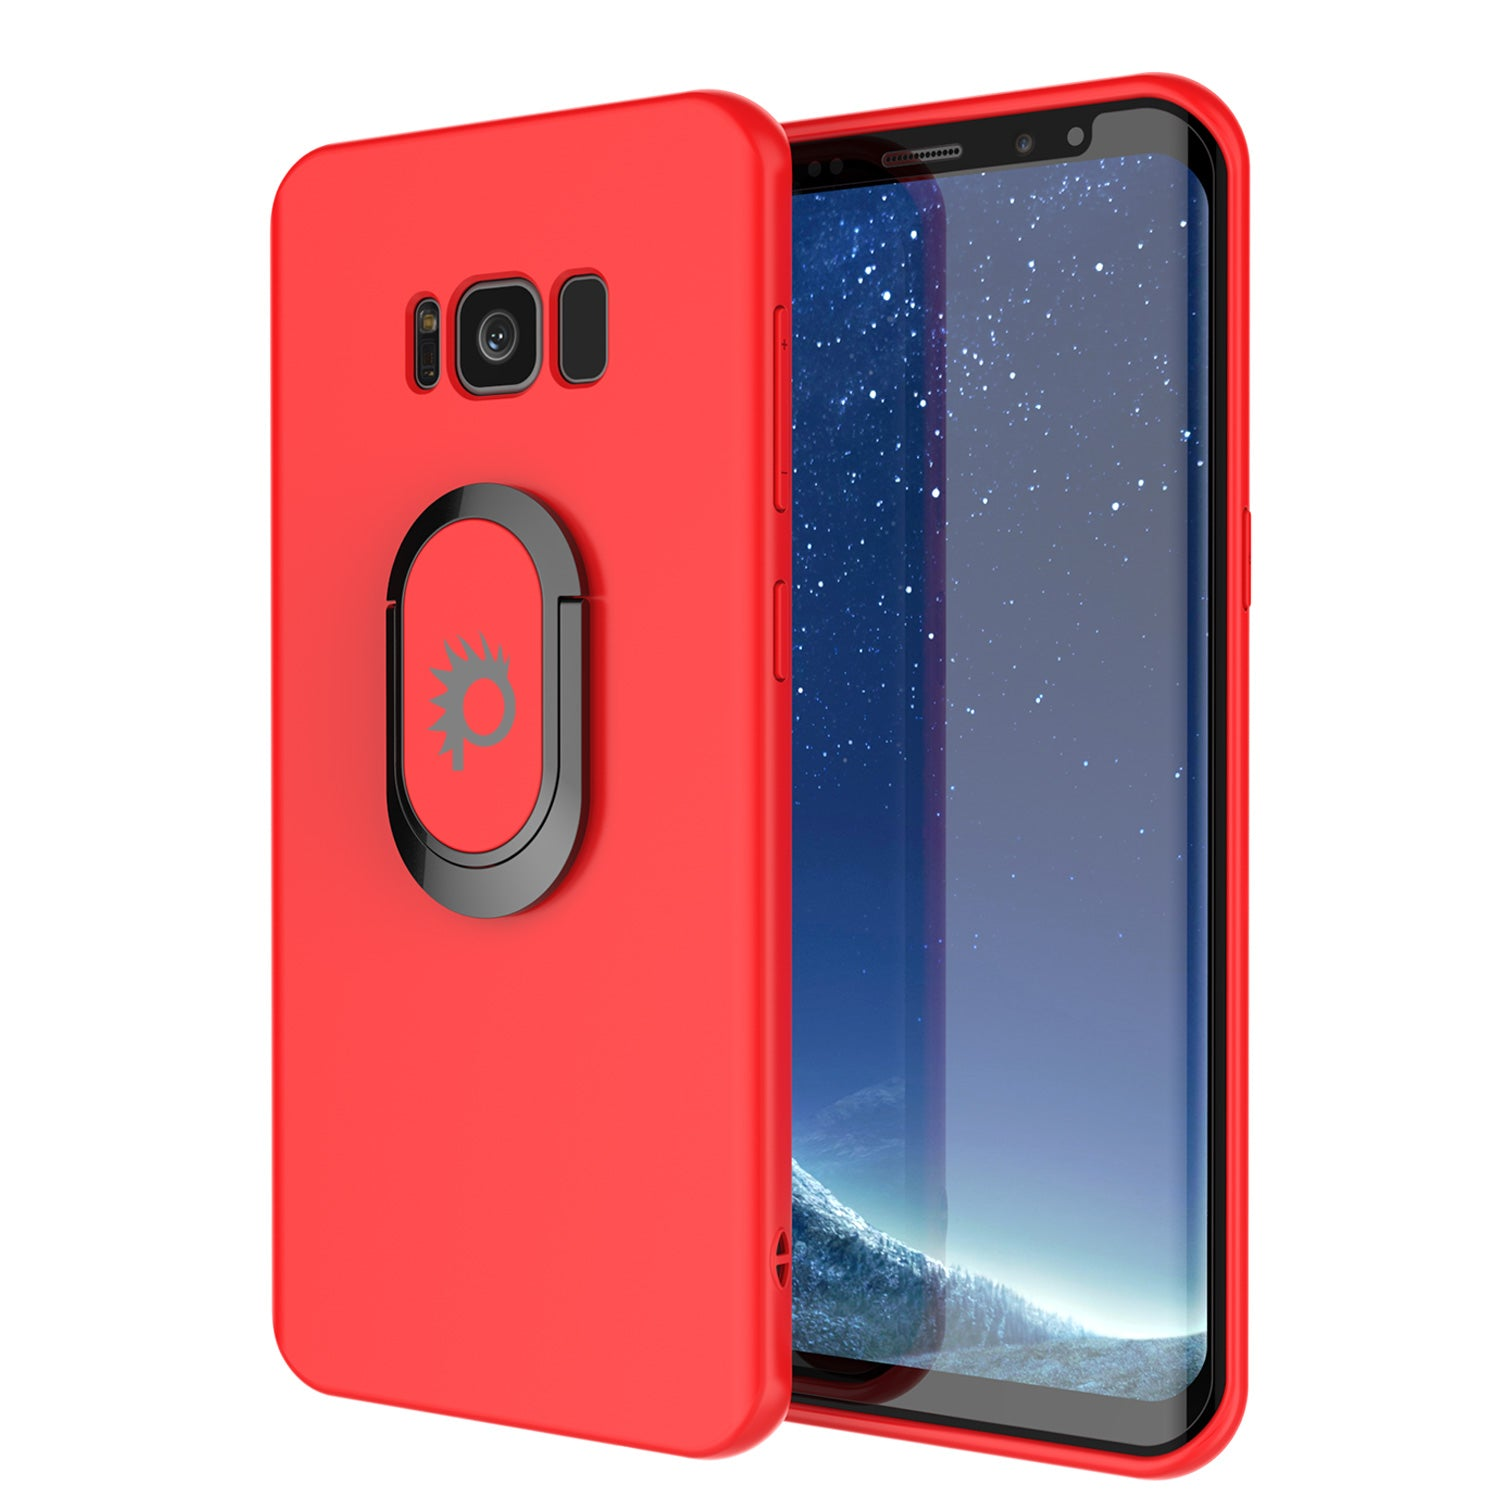 Galaxy S8 Case, Punkcase Magnetix Protective TPU Cover W/ Kickstand, Screen Protector [Red]